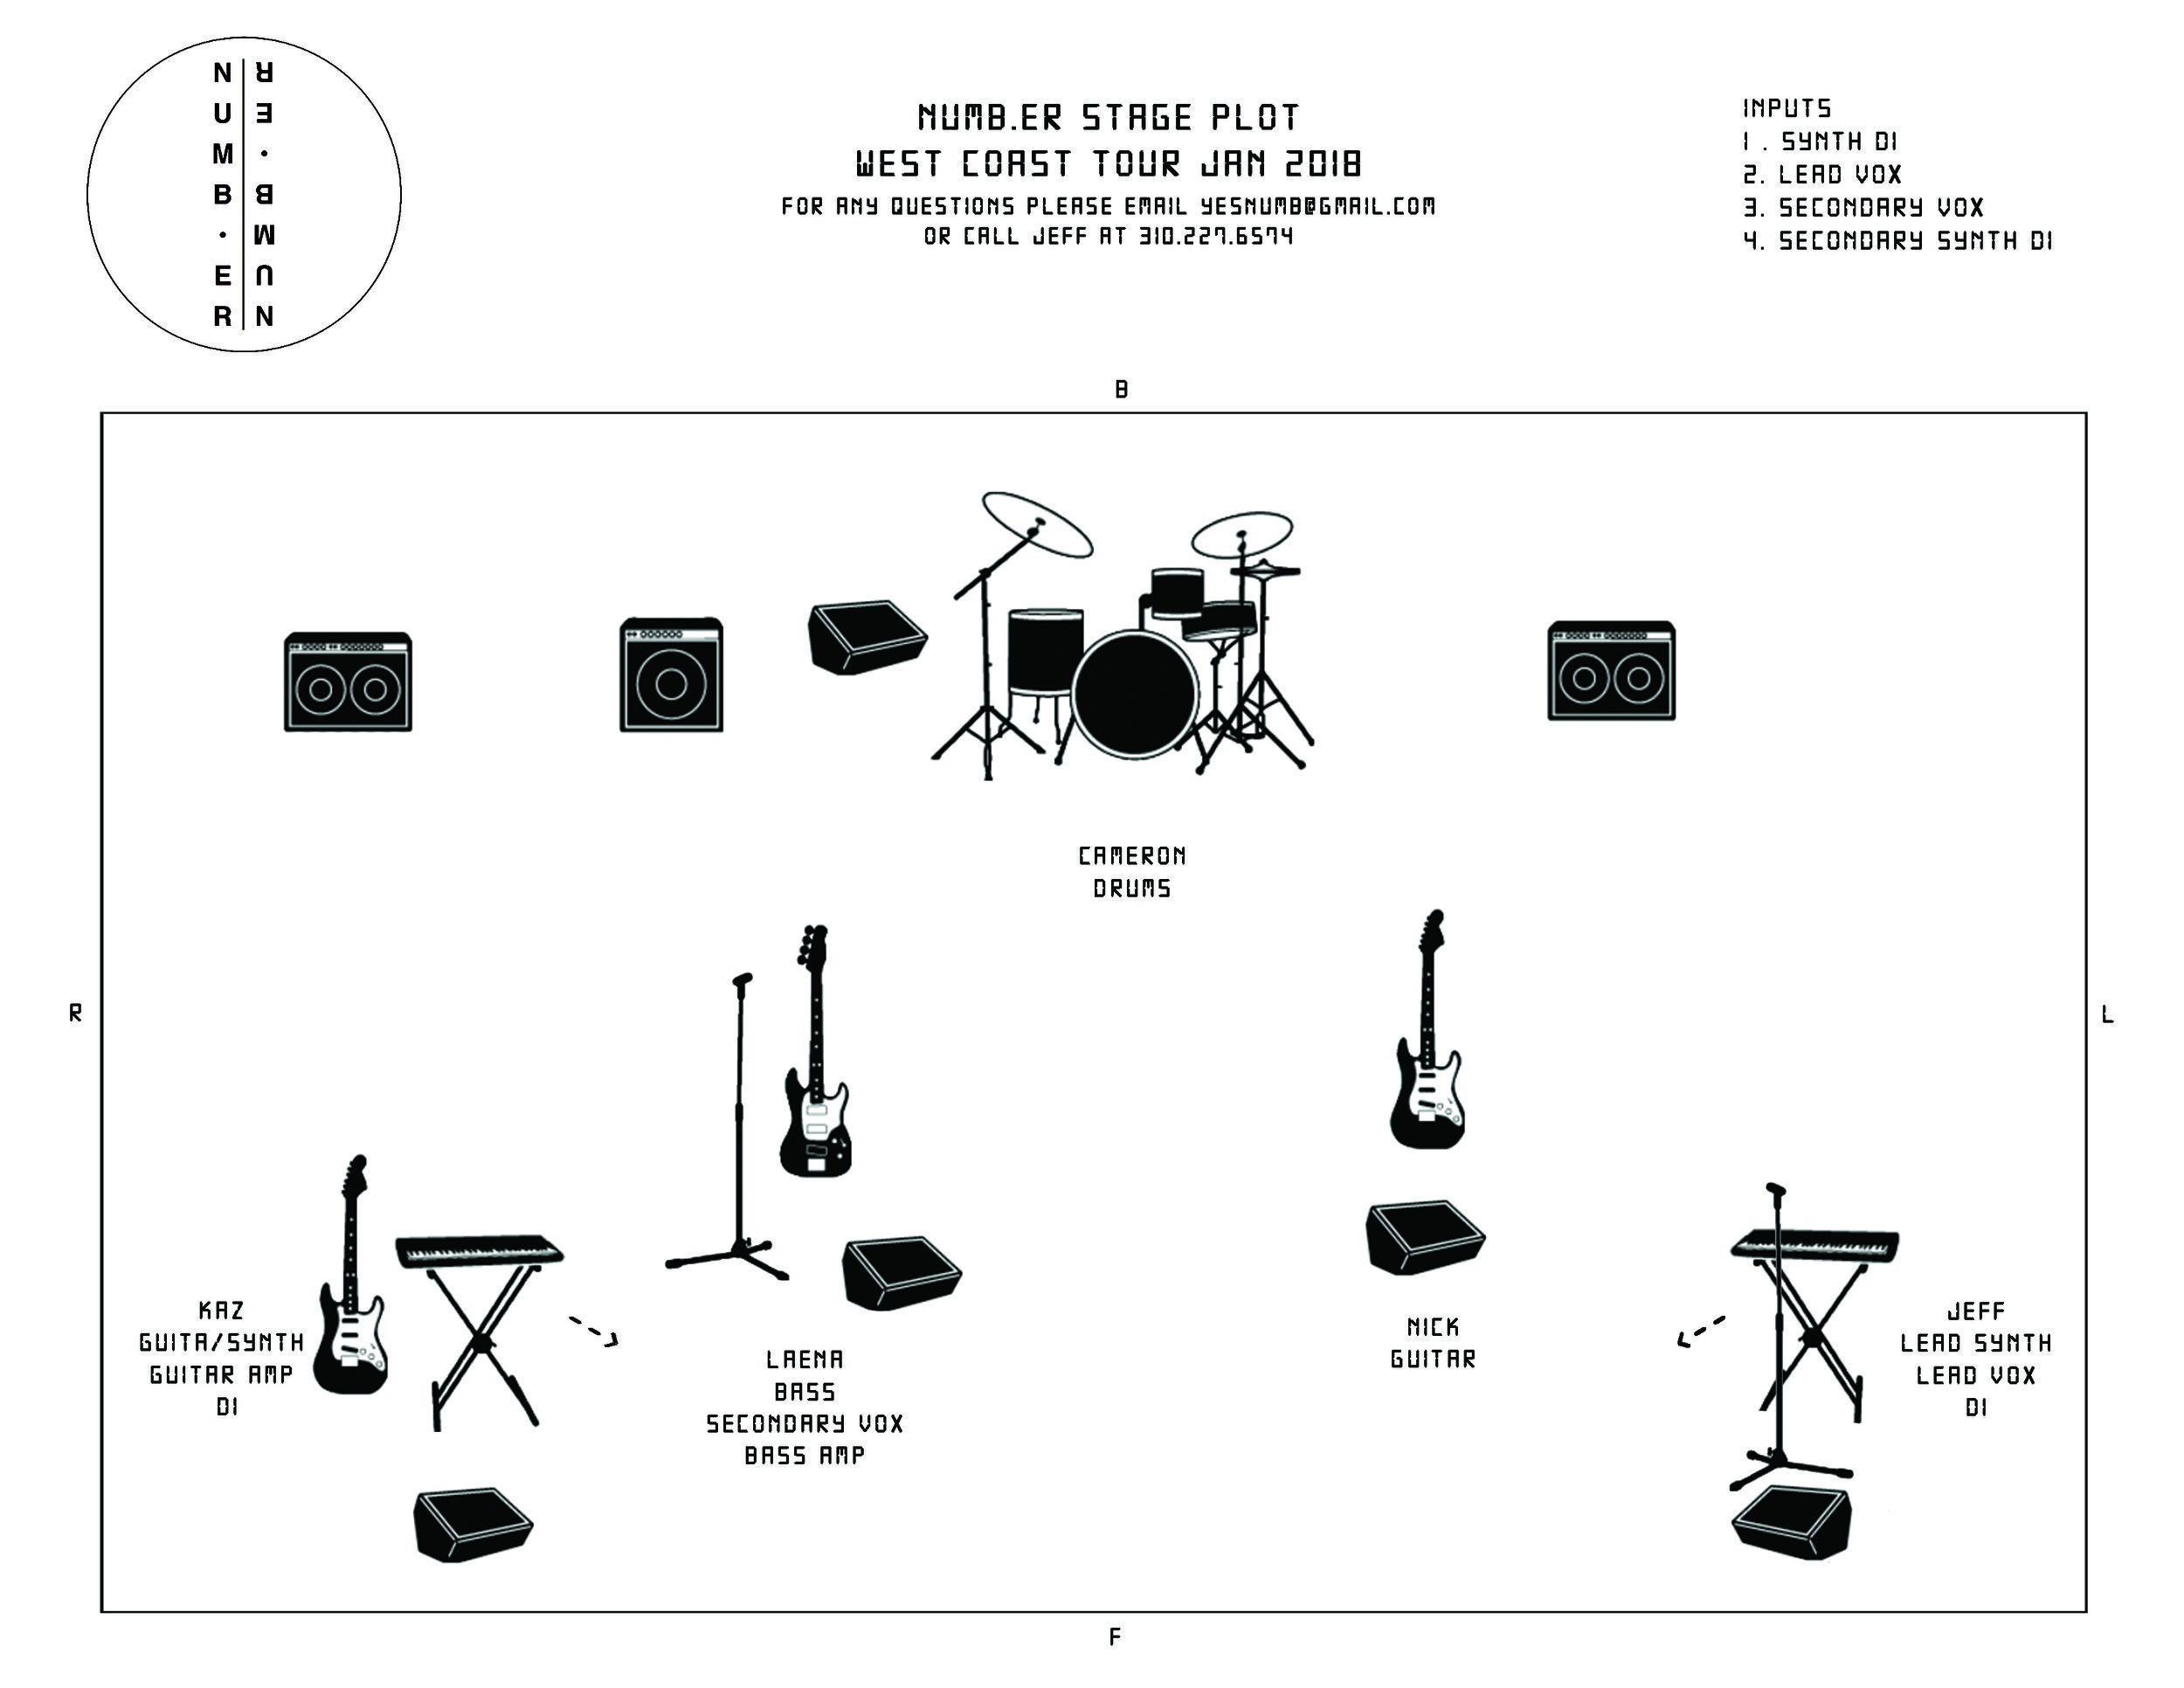 Stage plot for January 2018